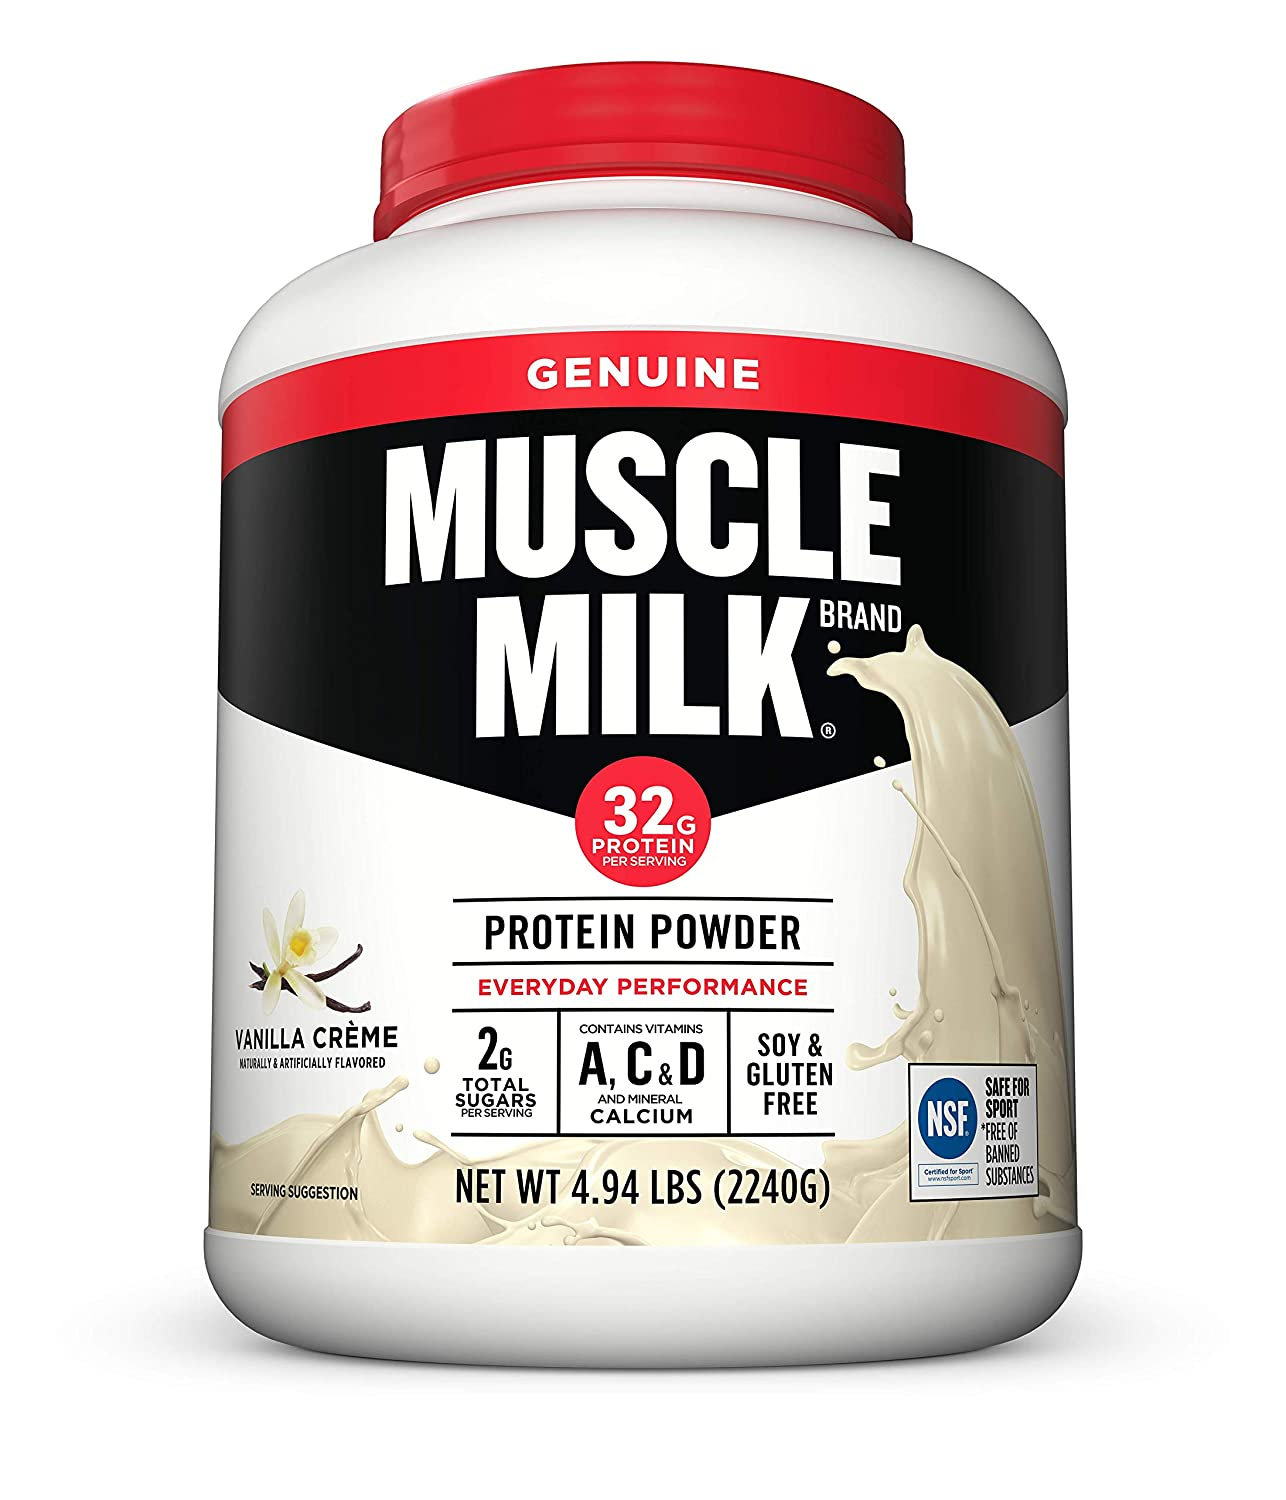 Muscle Milk Genuine Protein Powder, Vanilla Cr me, 32g Protein, 4.94 Pound